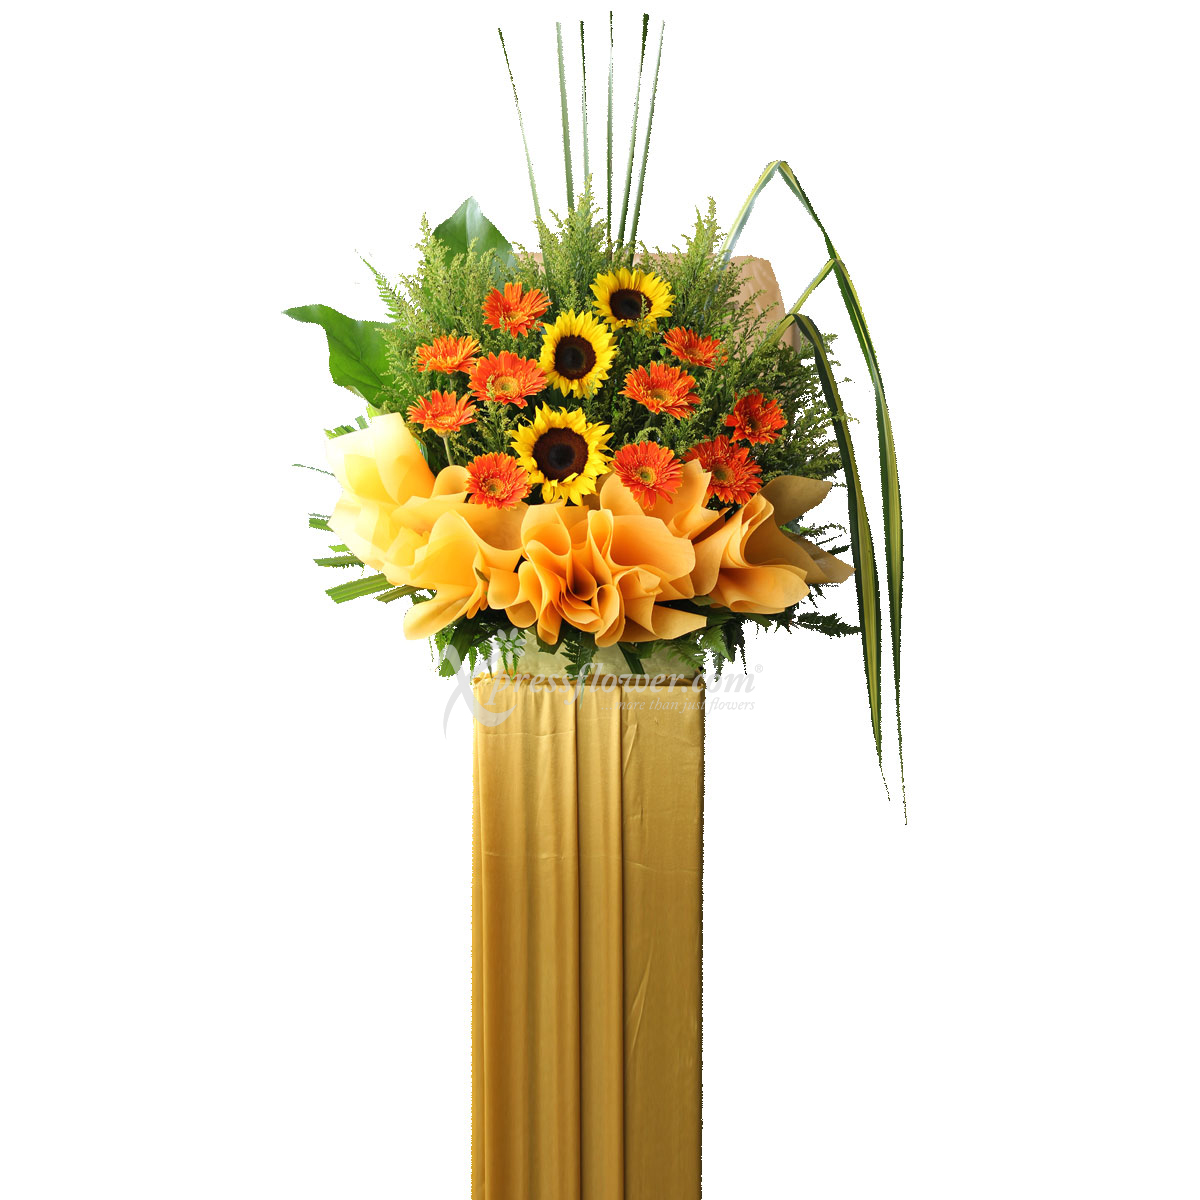 CS1710 Star Performer congratulatory flower opening stand